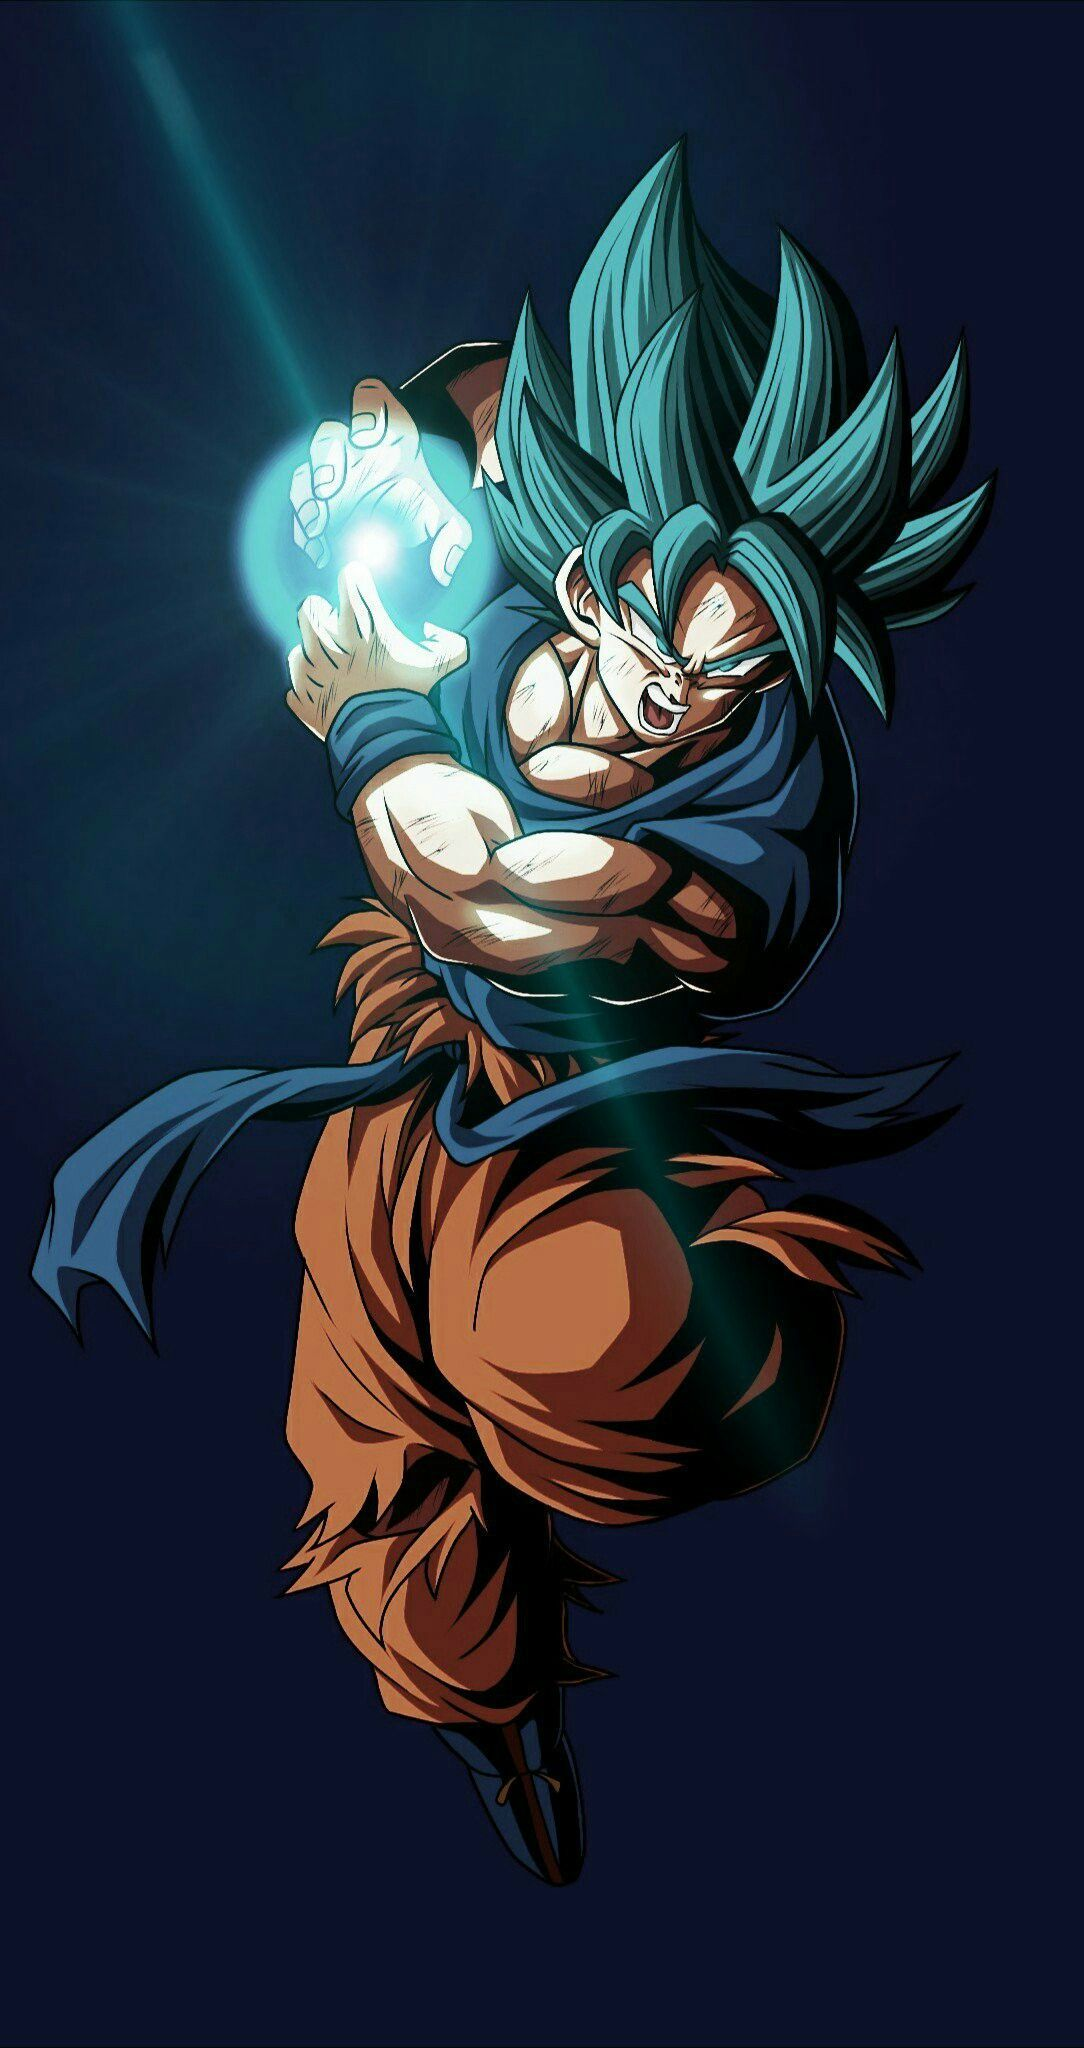 Most Great Anime Wallpaper Iphone Dragon Ball Goku Super Saiyan Blue In 2020 Anime Dragon Ball Super Dragon Ball Wallpaper Iphone Dragon Ball Super Manga